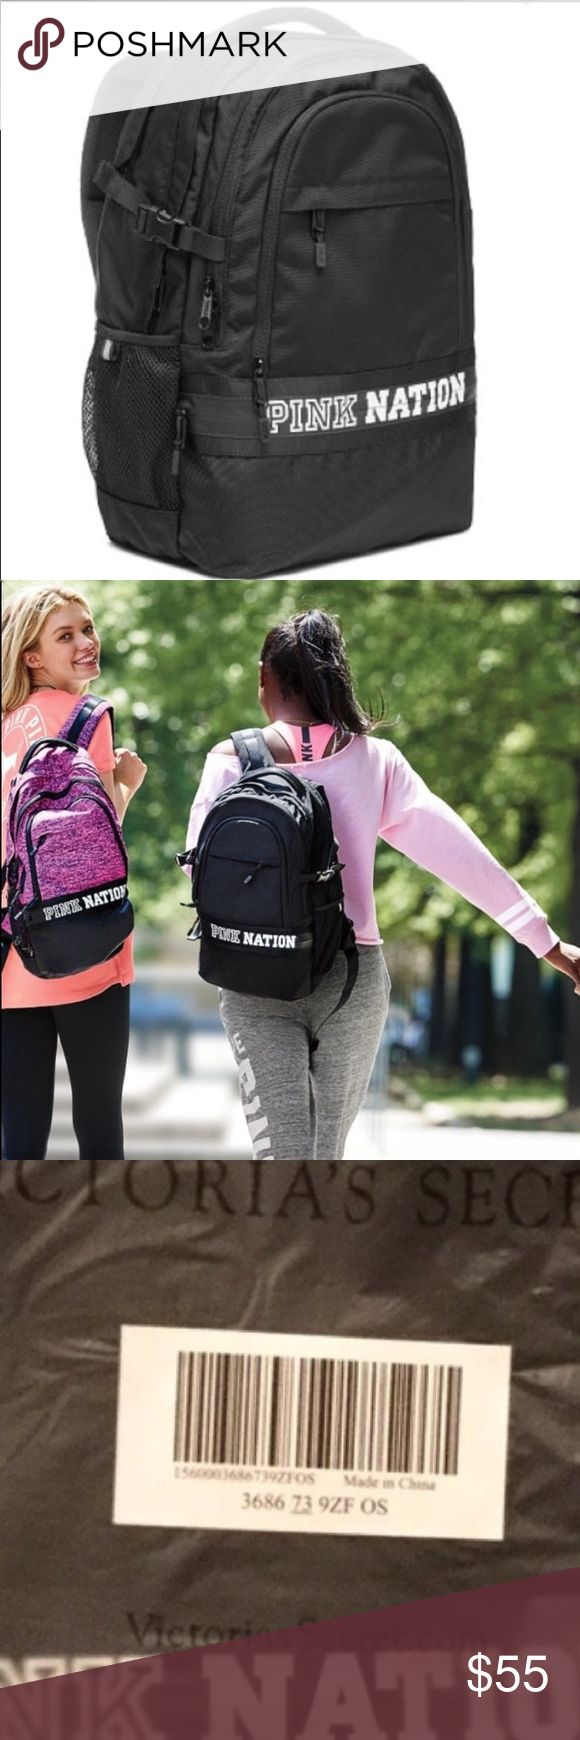 🌟BRAND NEW🌟 PINK NATION COLLEGIATE BACKPACK BLK Brand New  Authentic  No Tags Inside Online Packaging  Fees Included in price  Look at pictures please If you need additional pictures let me know 🚫NO TRADES🚫 🚫No Shipping on the Weekends🚫 Serious Buyers Only  THANK YOU PINK Victoria's Secret Bags Backpacks